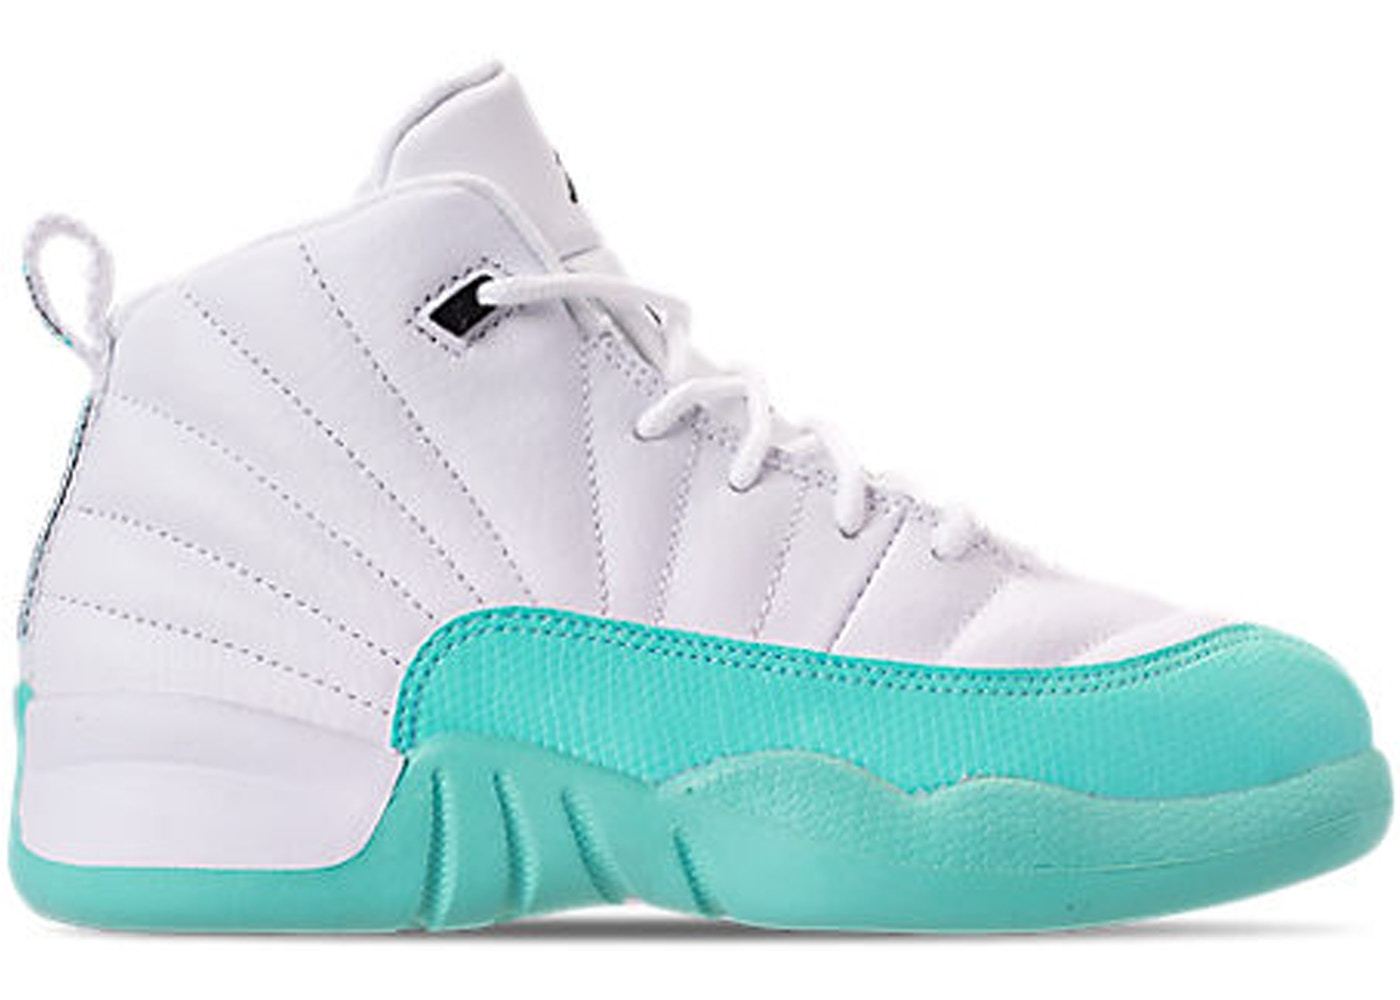 factory authentic 39886 bec1b Jordan 12 Retro Light Aqua (PS)